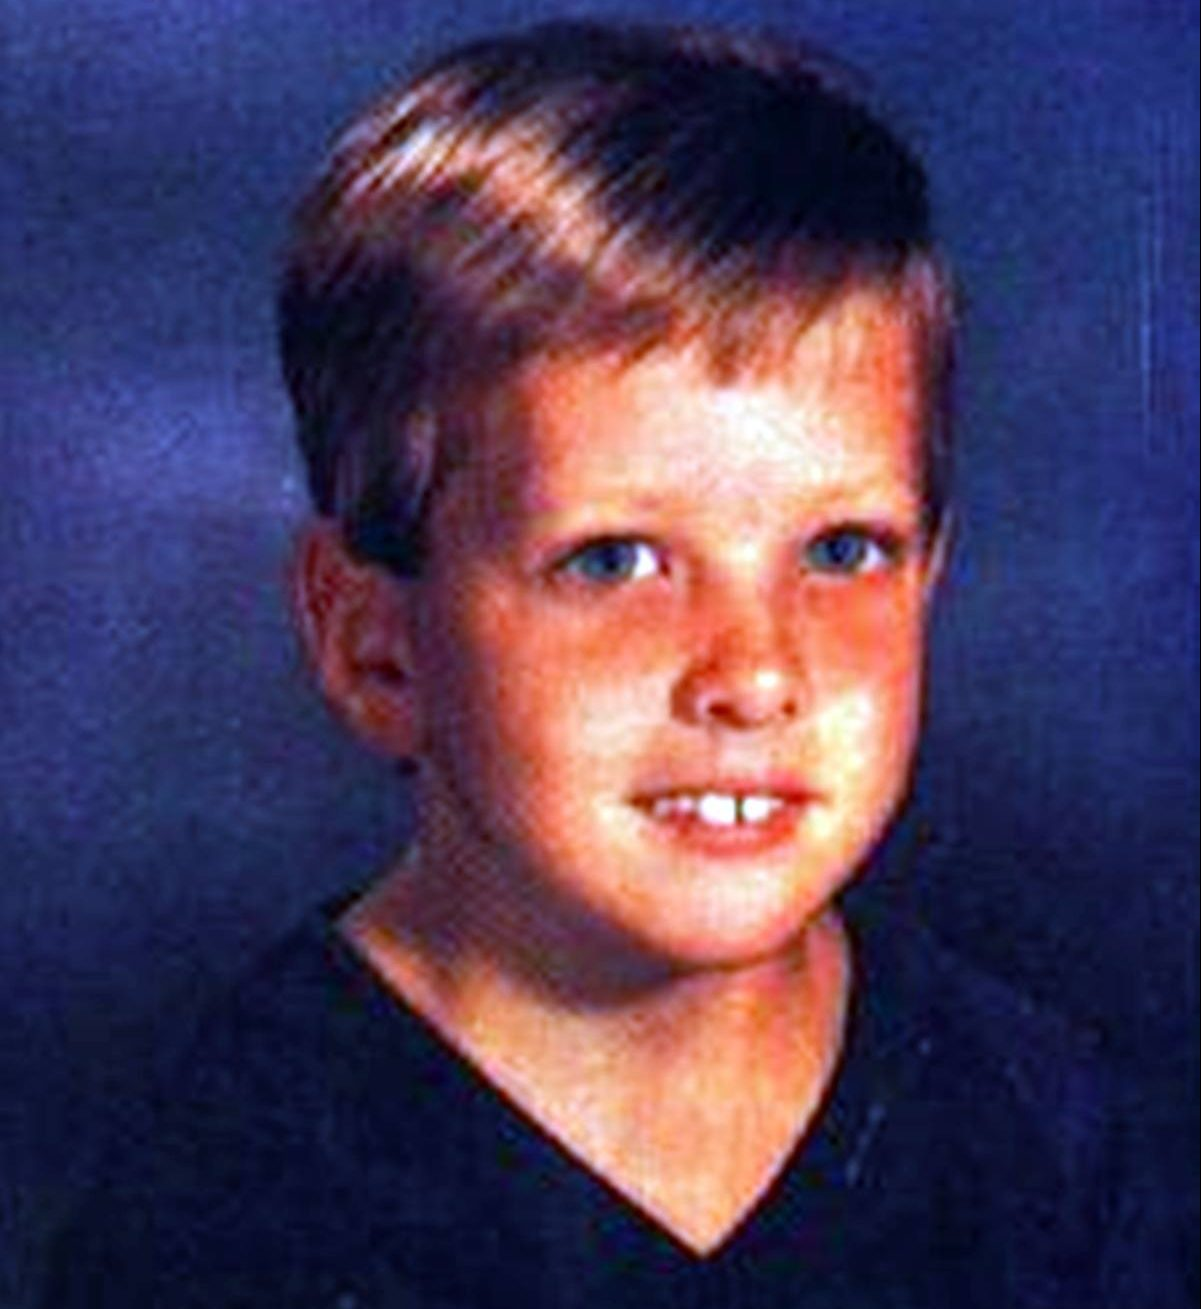 New Kids on the Blocks Joey McIntyre as a child